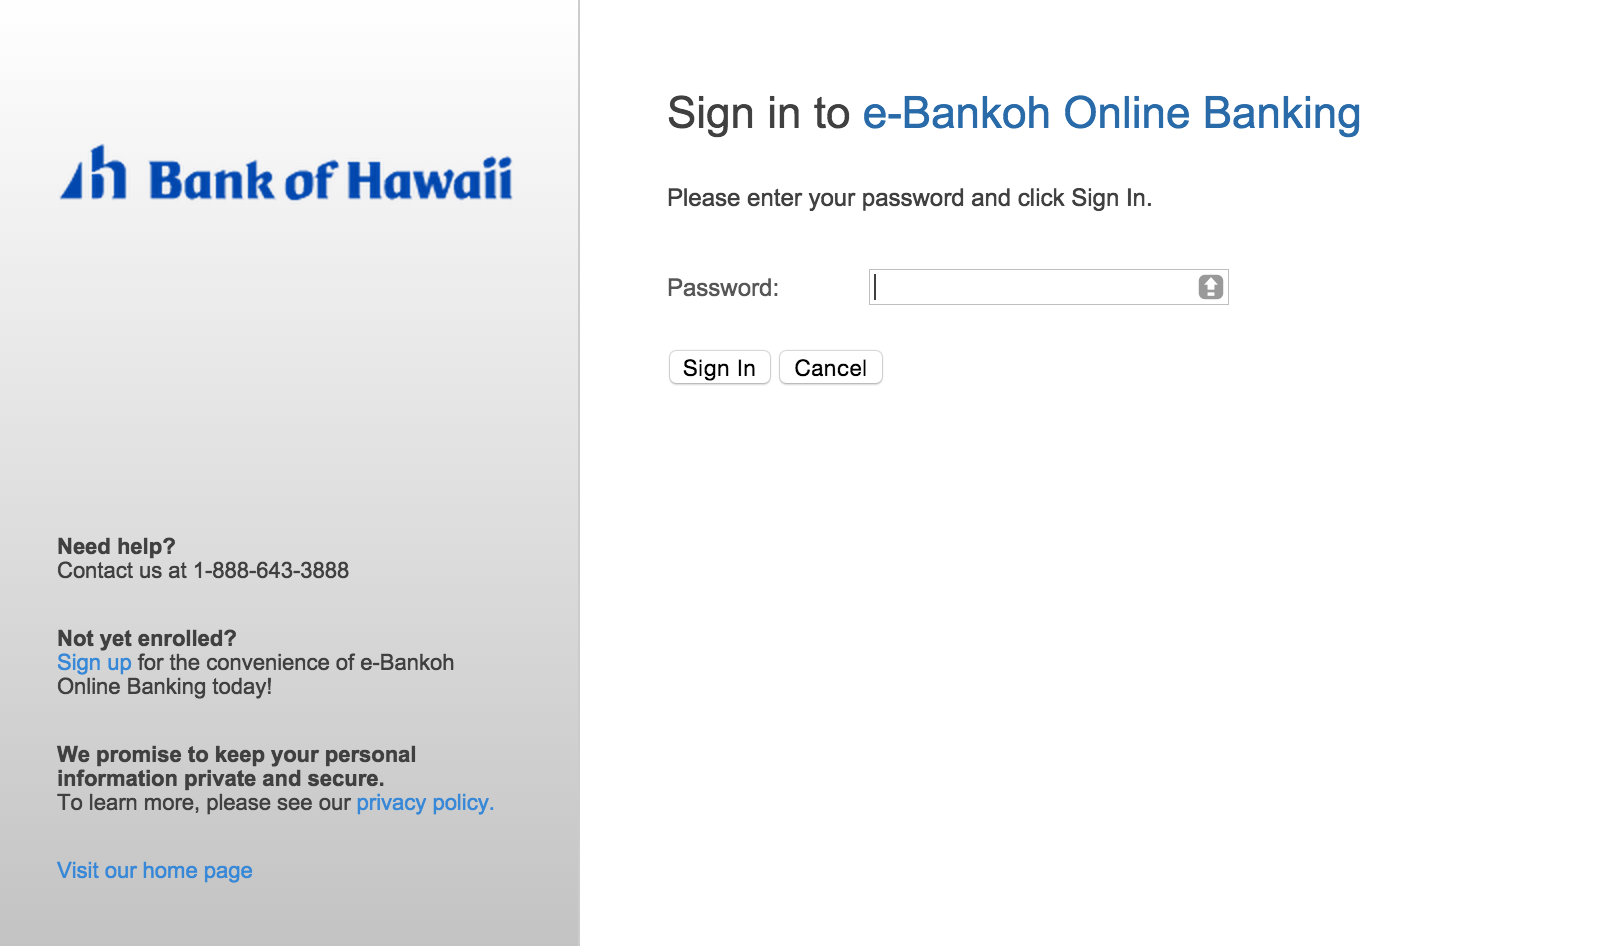 retrospective analysis bank of hawaii credit card sign in Electronics Direct